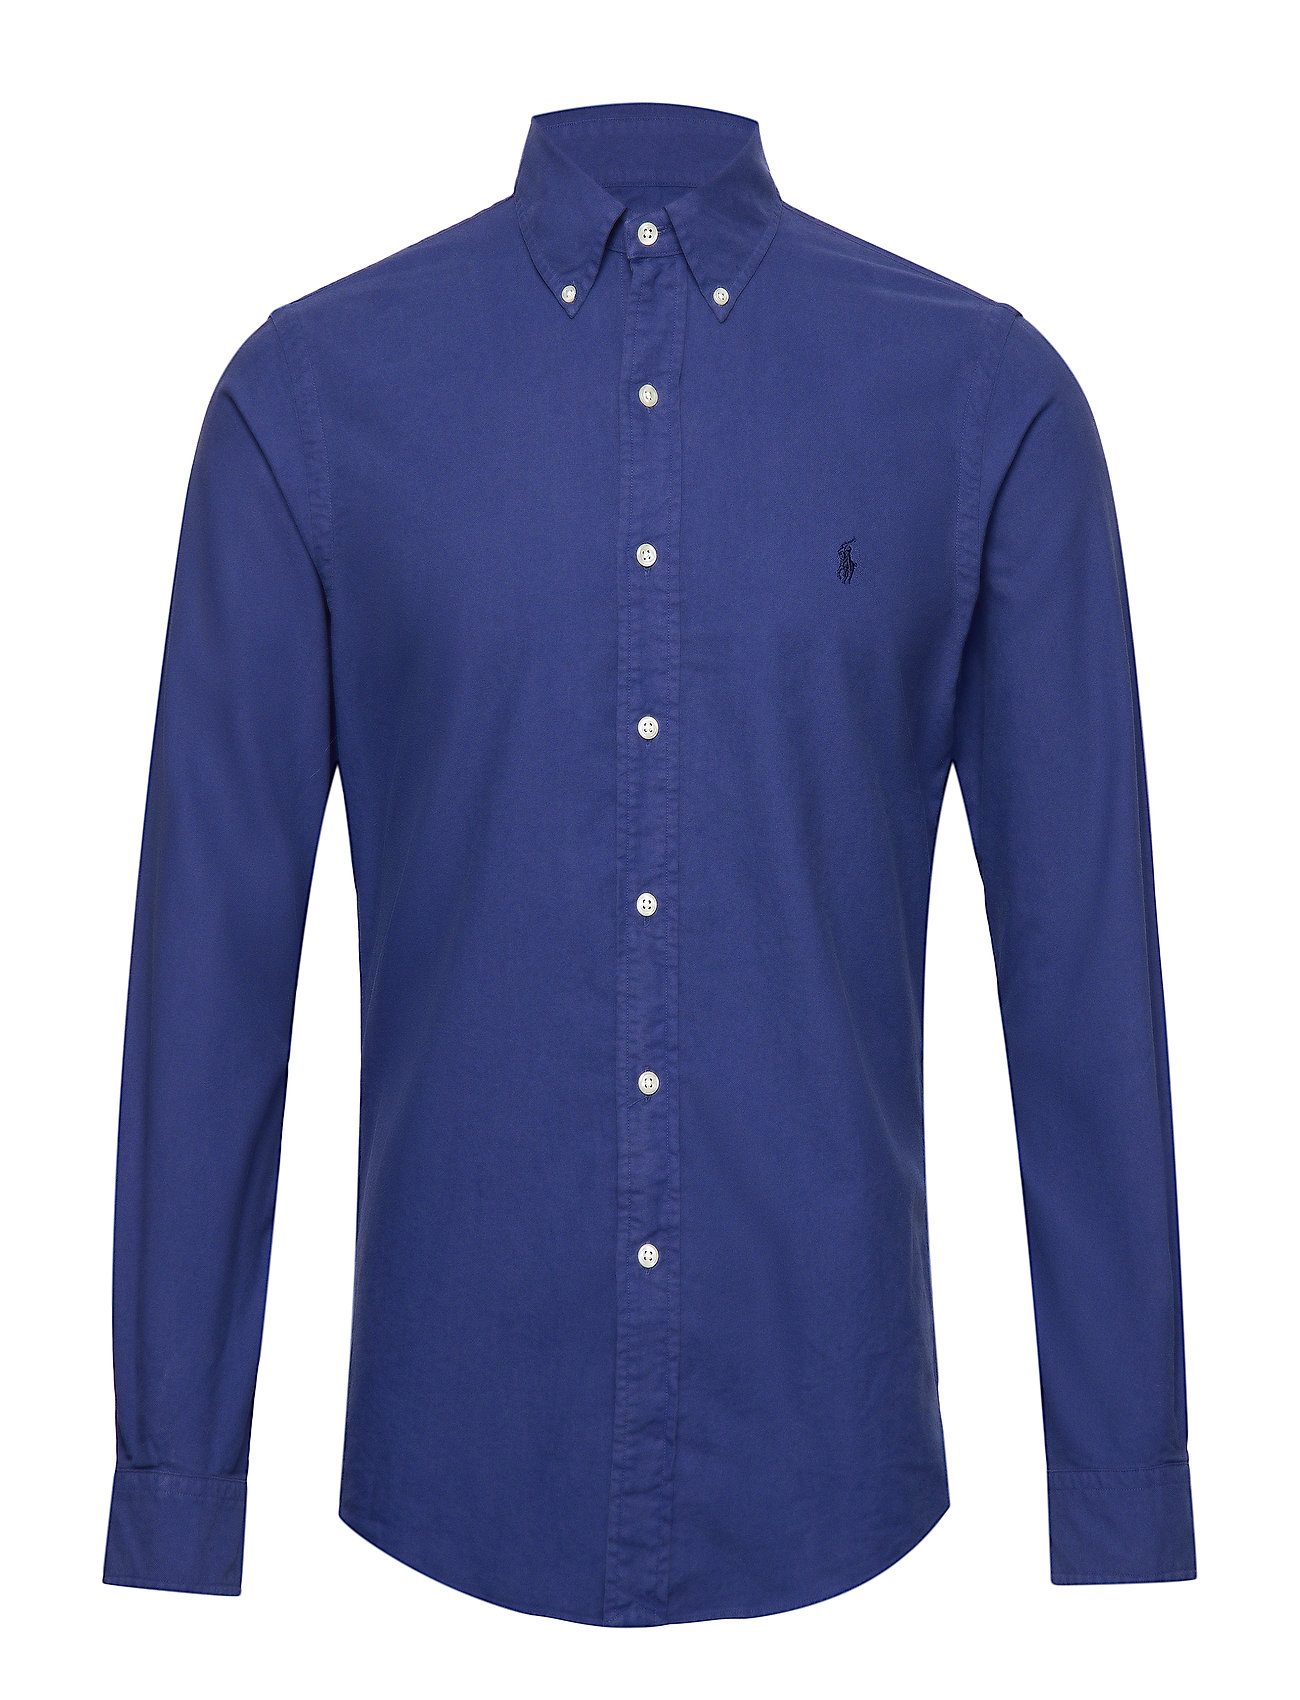 Polo Ralph Lauren Slim Fit Cotton Oxford Shirt - BLUE YACHT